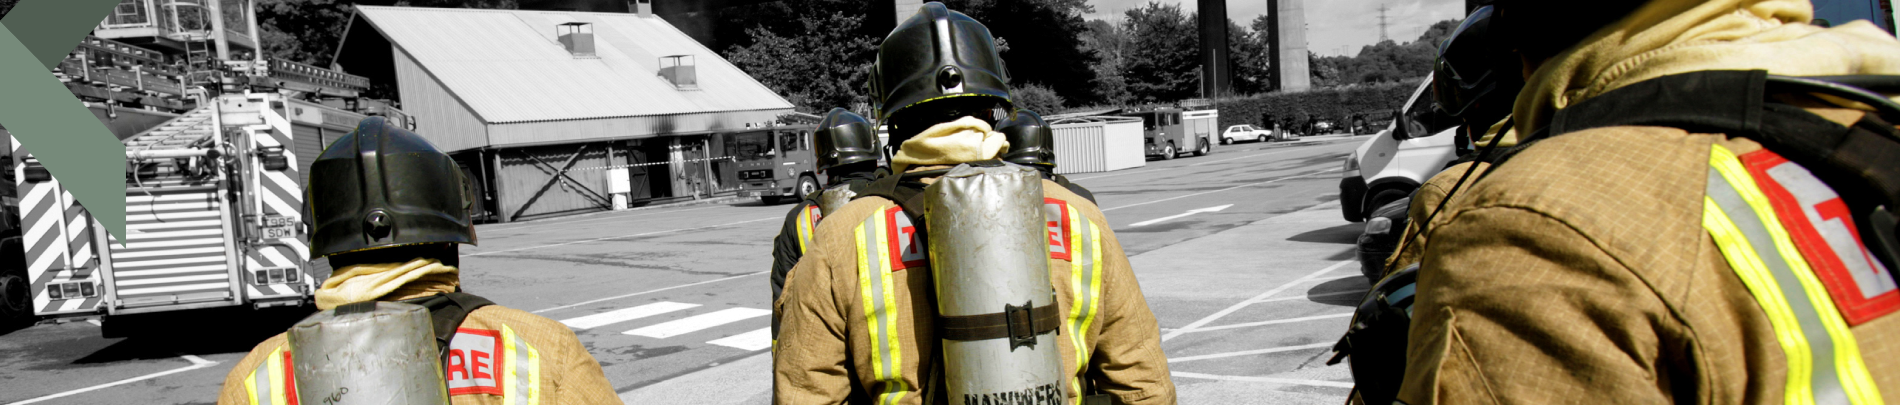 Fire fighters on training excercise